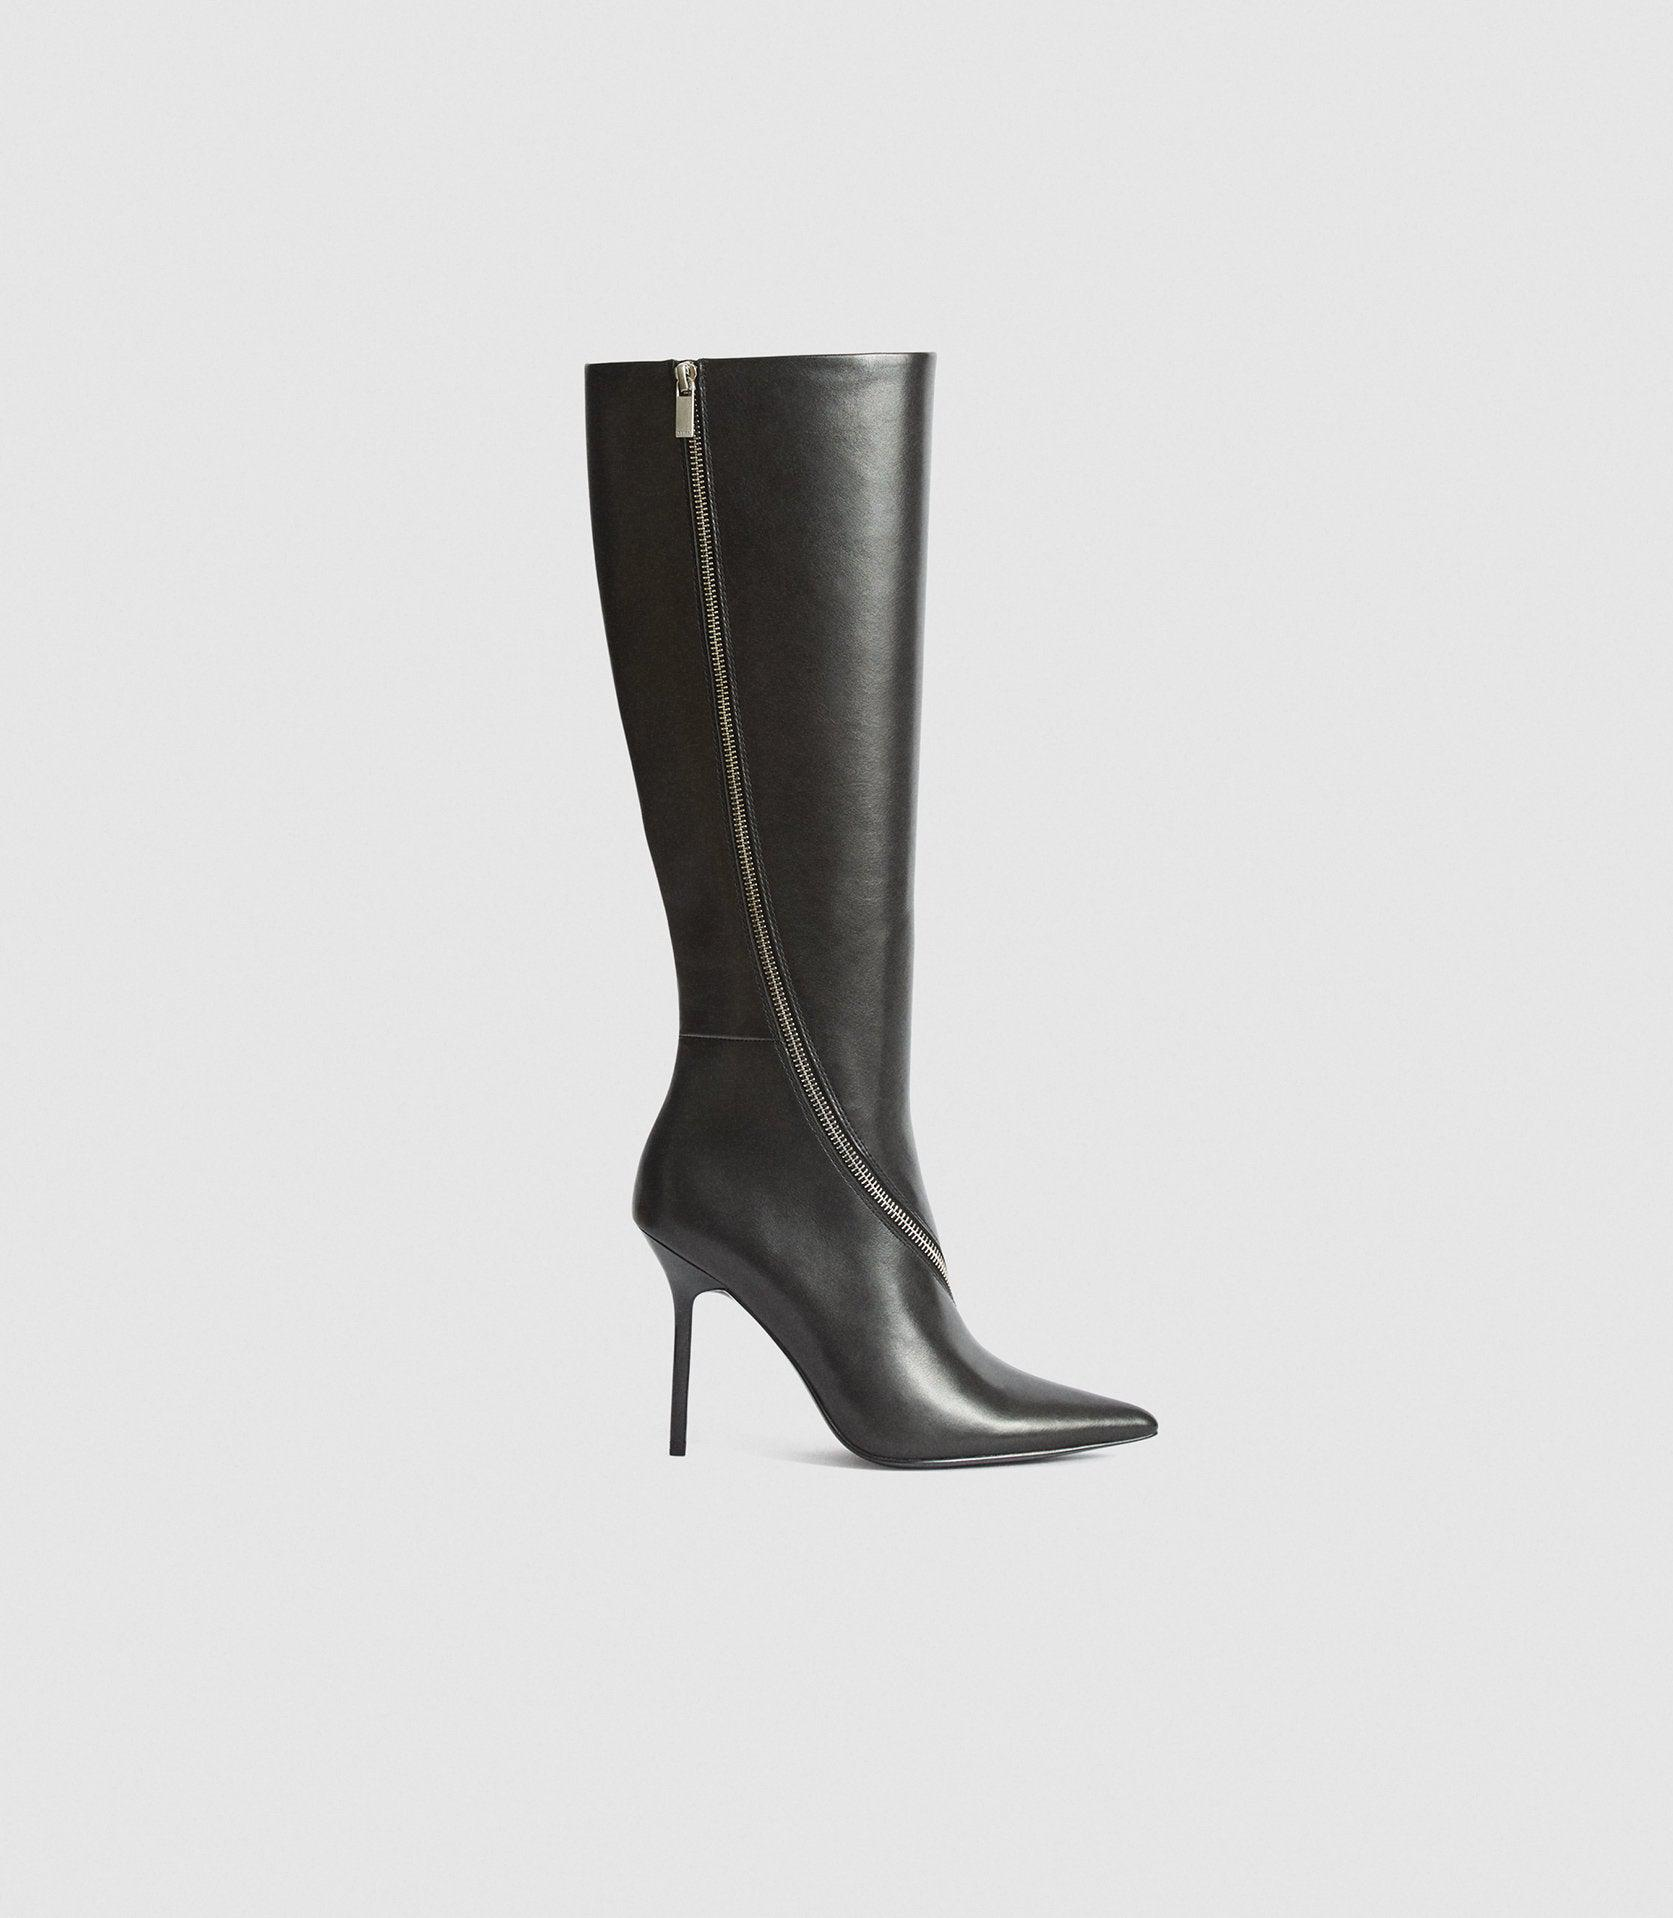 HOXTON KNEE HIGH - LEATHER KNEE HIGH BOOTS